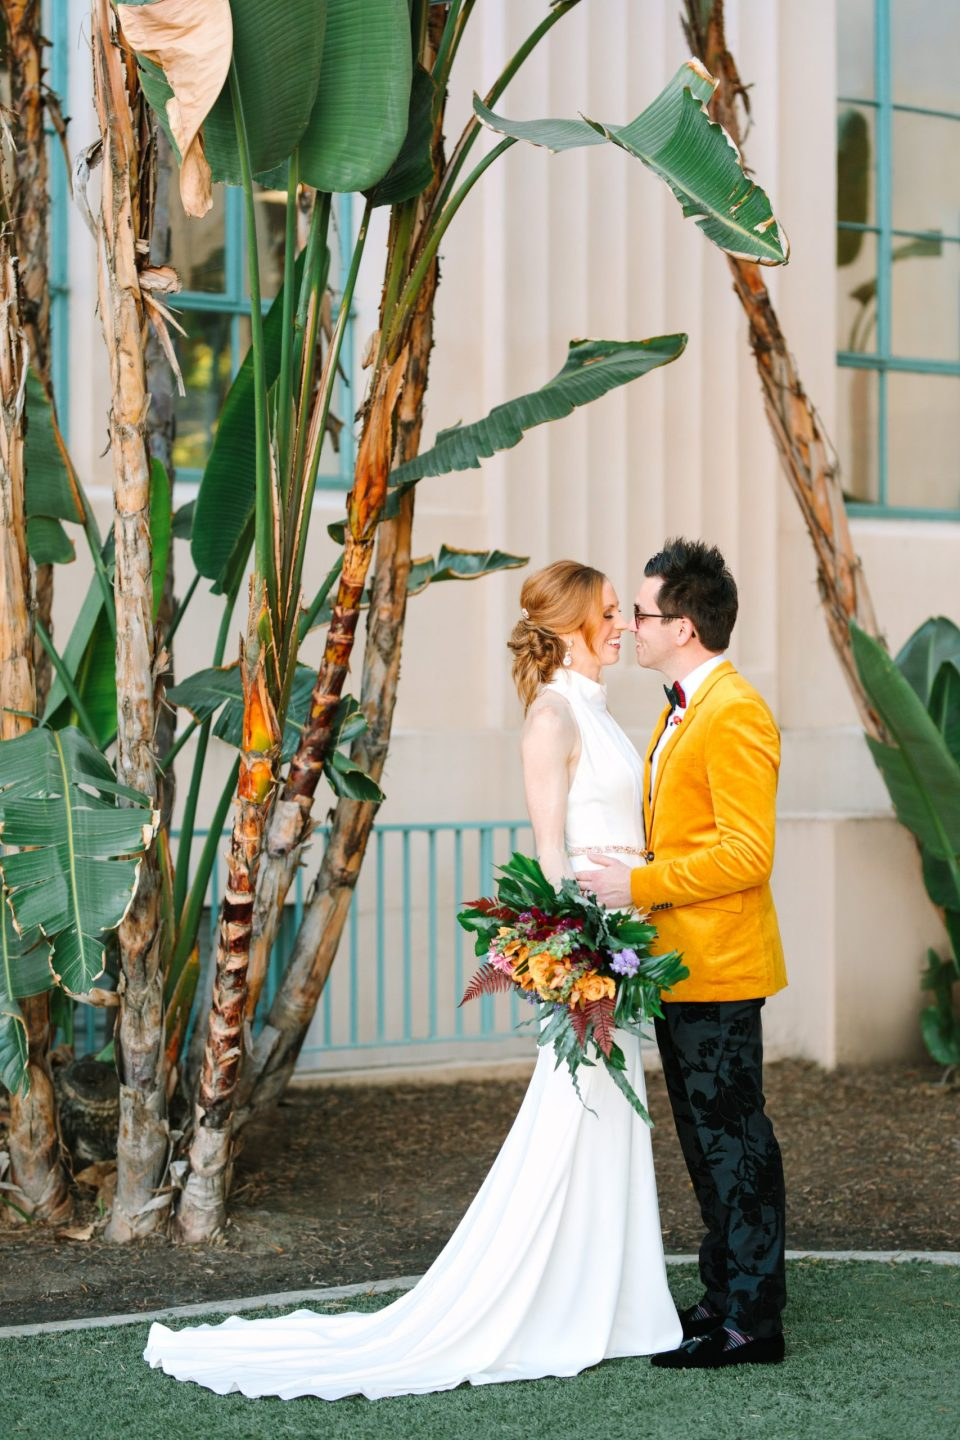 Bride and groom at San Diego Courthouse - www.marycostaweddings.com